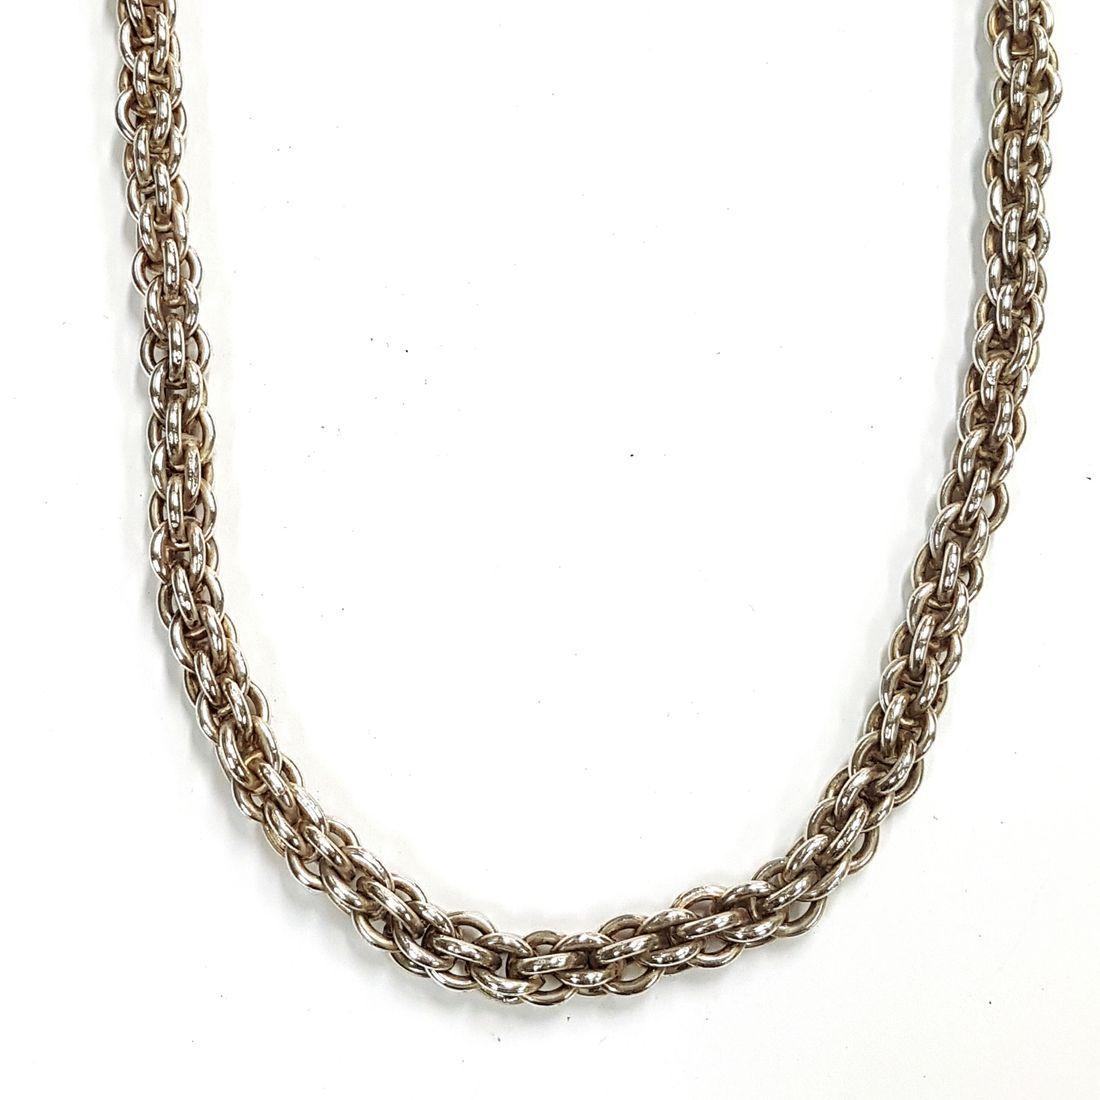 Solid Silver Rope Chain  available at Kazbah online and our Leicester City Centre Shop